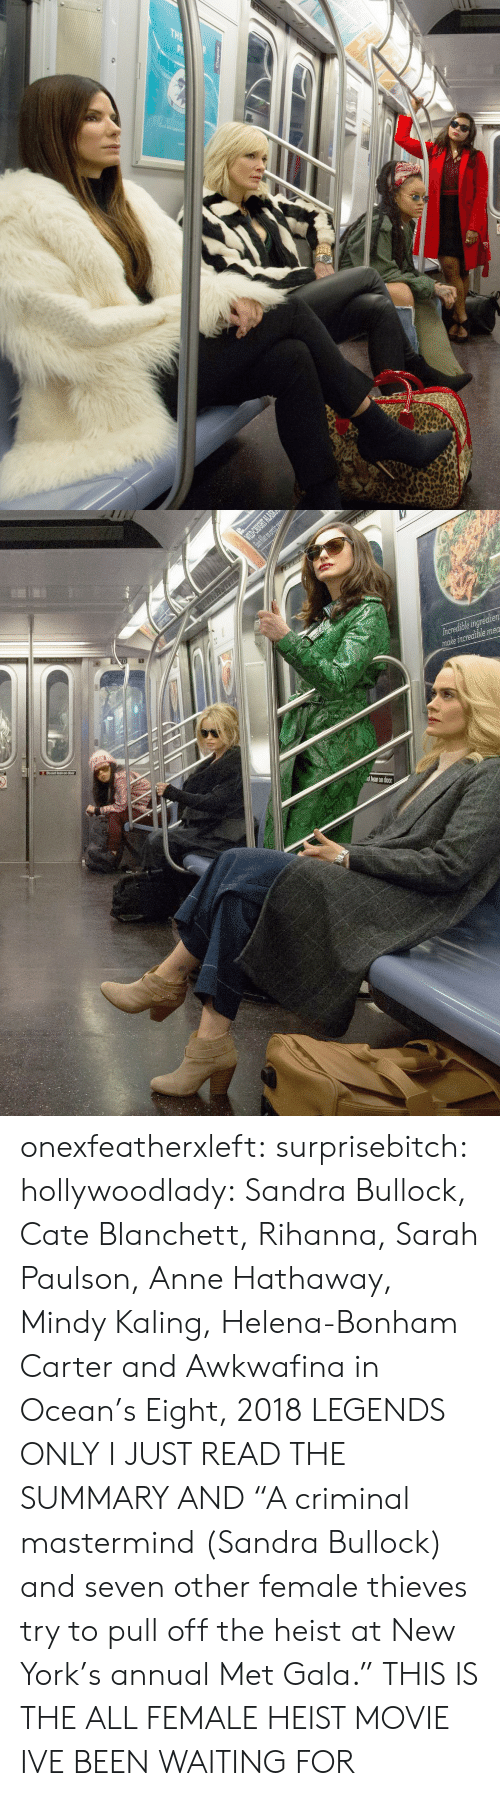 """Annually: t lean on door onexfeatherxleft:  surprisebitch:  hollywoodlady:    Sandra Bullock, Cate Blanchett, Rihanna, Sarah Paulson, Anne Hathaway, Mindy Kaling, Helena-Bonham Carter and Awkwafina in Ocean's Eight, 2018   LEGENDS ONLY  I JUST READ THE SUMMARY AND   """"A criminal mastermind (Sandra Bullock) and seven other female thieves try to pull off the heist at New York's annual Met Gala.""""  THIS IS THE ALL FEMALE HEIST MOVIE IVE BEEN WAITING FOR"""